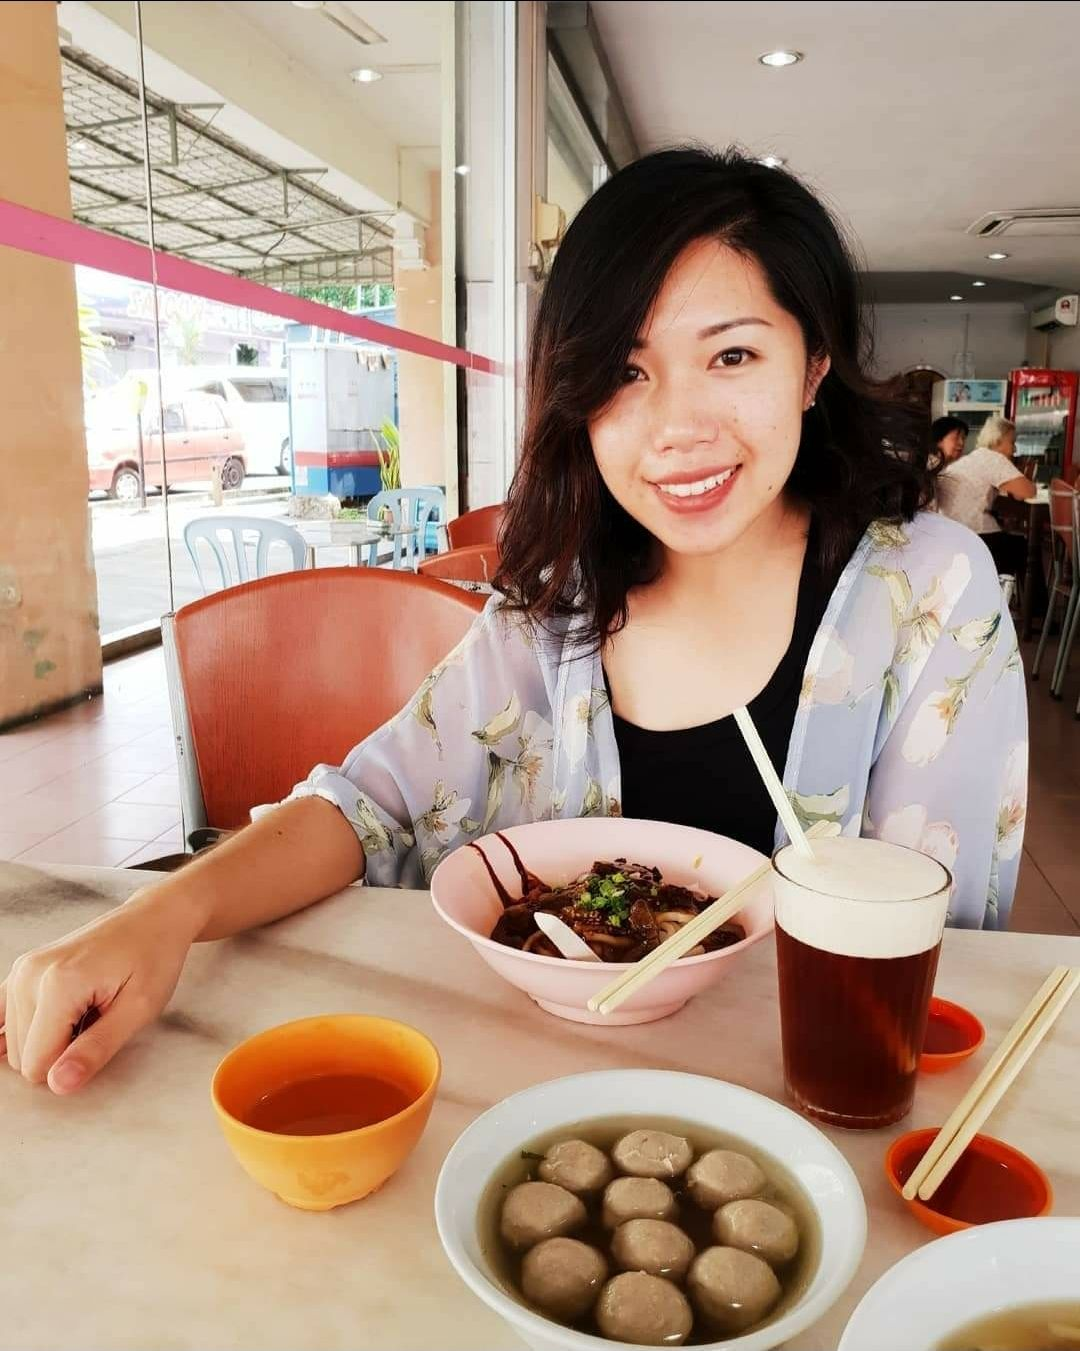 Bernie Yong would bring visitors for a heart meal in Seremban. Photo: Bernie Yong